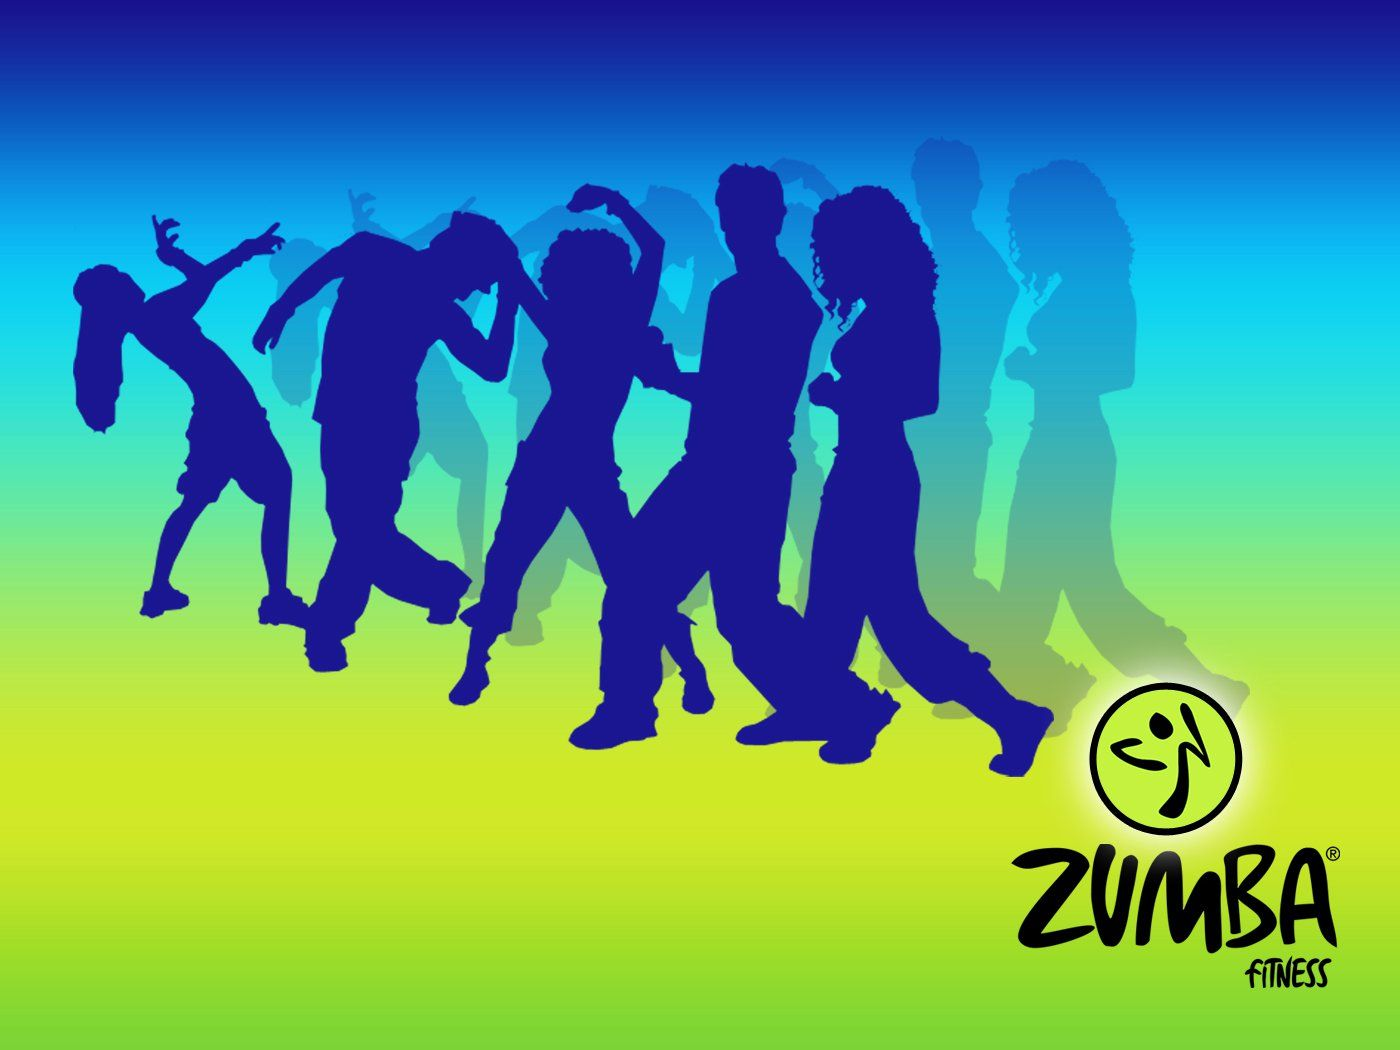 Zumba wallpaper bluegreen ideas for the house pinterest zumba zumba wallpaper bluegreen toneelgroepblik Choice Image